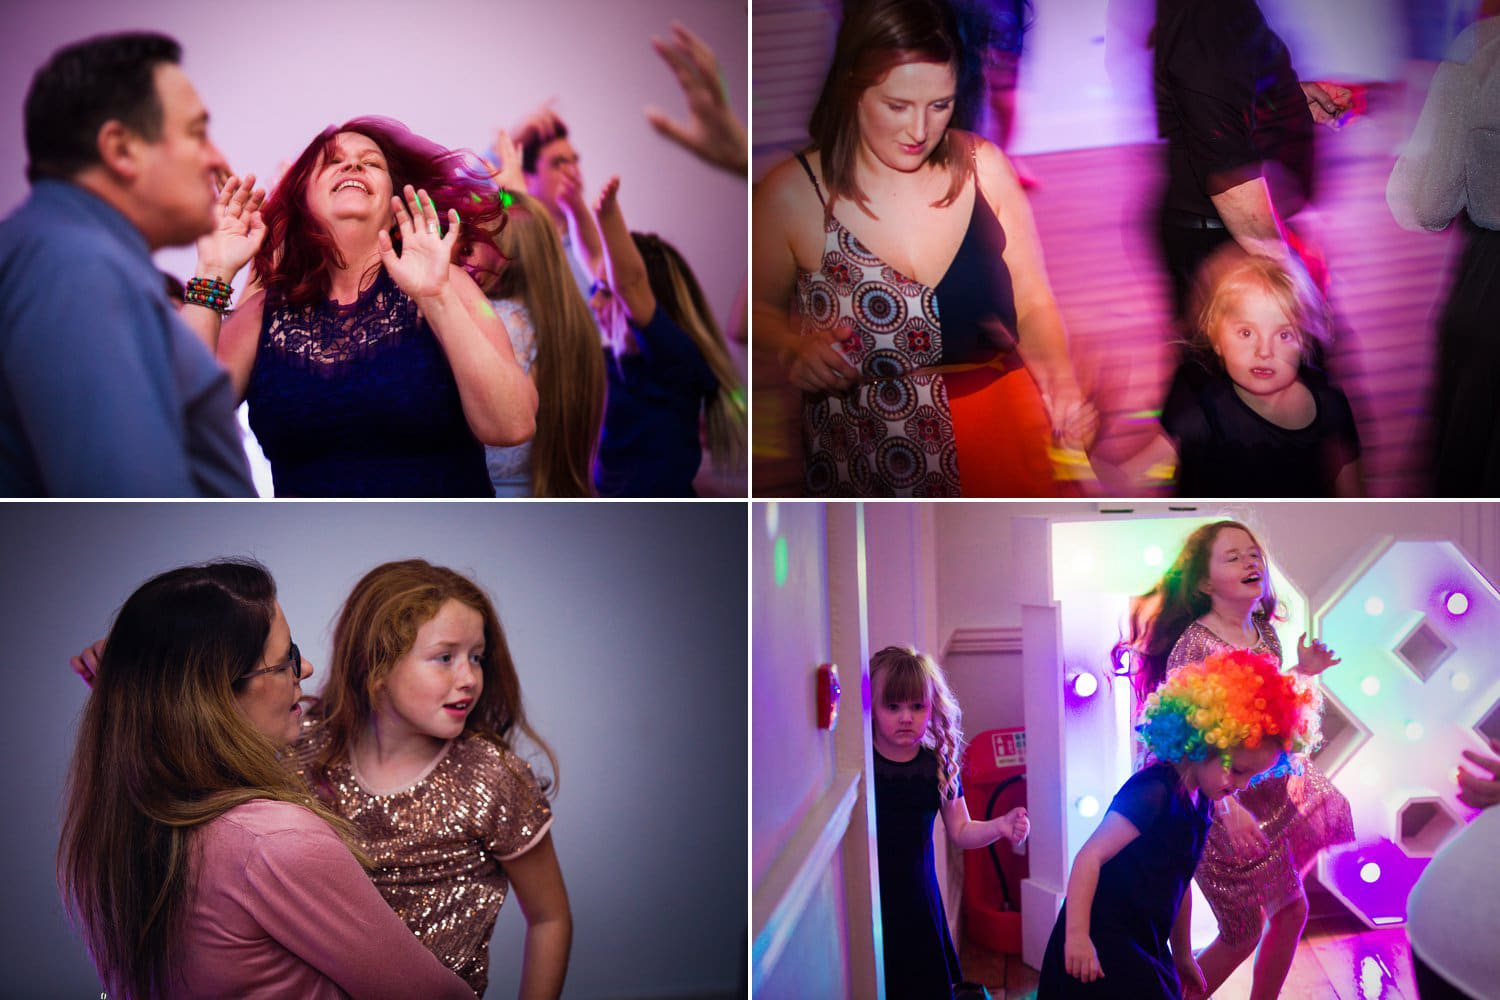 Hexham Abbey Wedding, dance floor fun